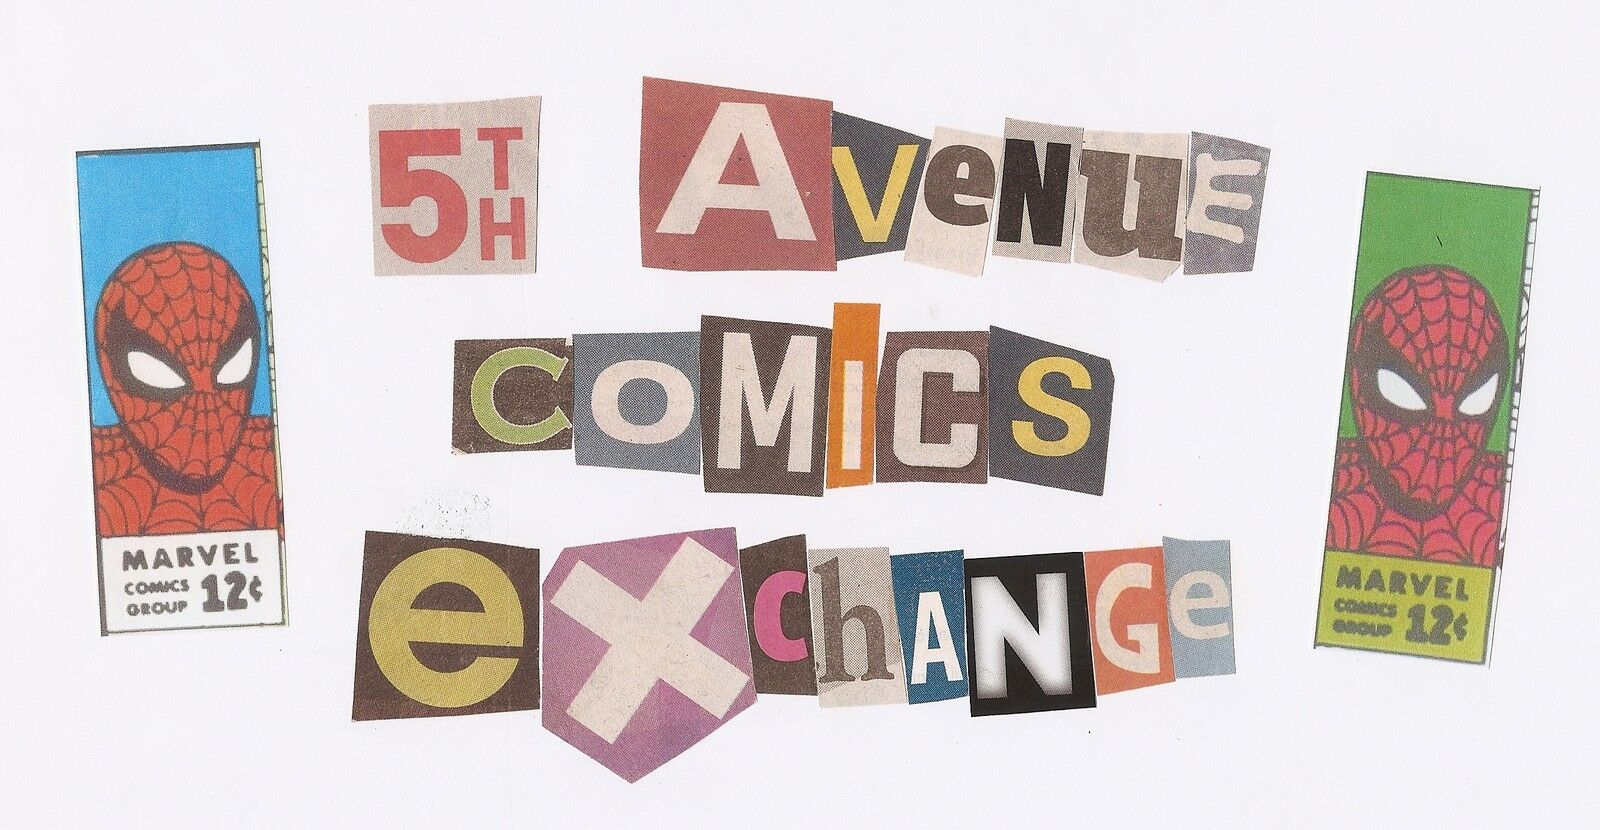 5th Avenue Comics Exchange